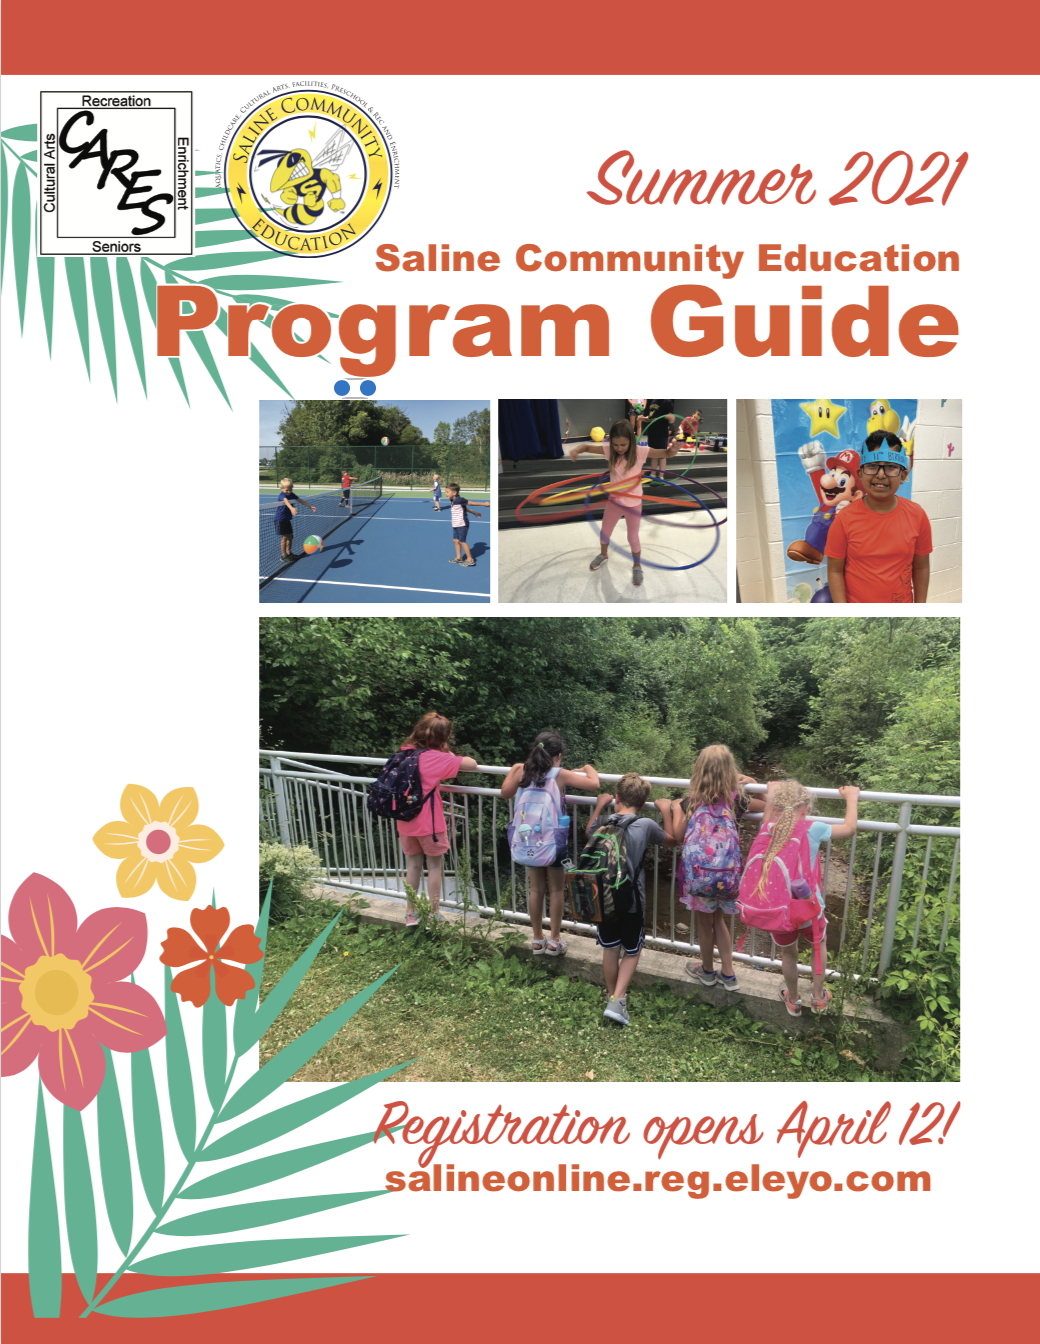 Summer 2021 Program Guide